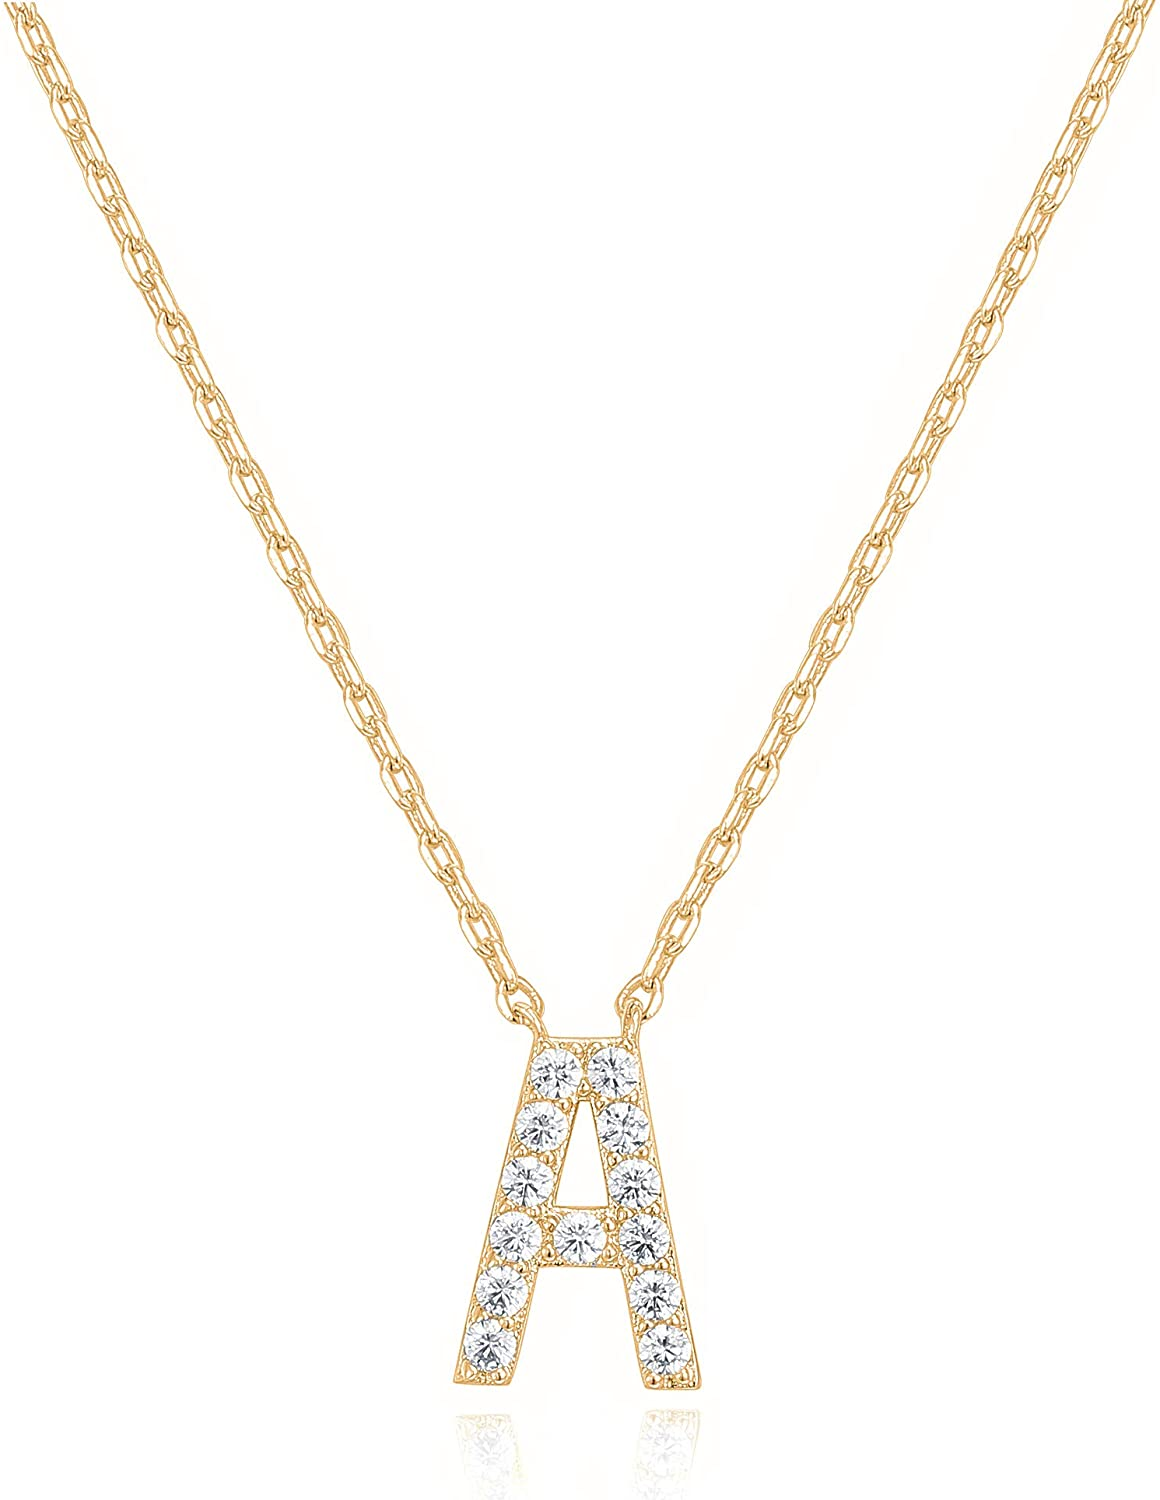 PAVOI 14K Yellow Finally popular brand Gold Plated Initial Zirconia mart Cubic L Necklace